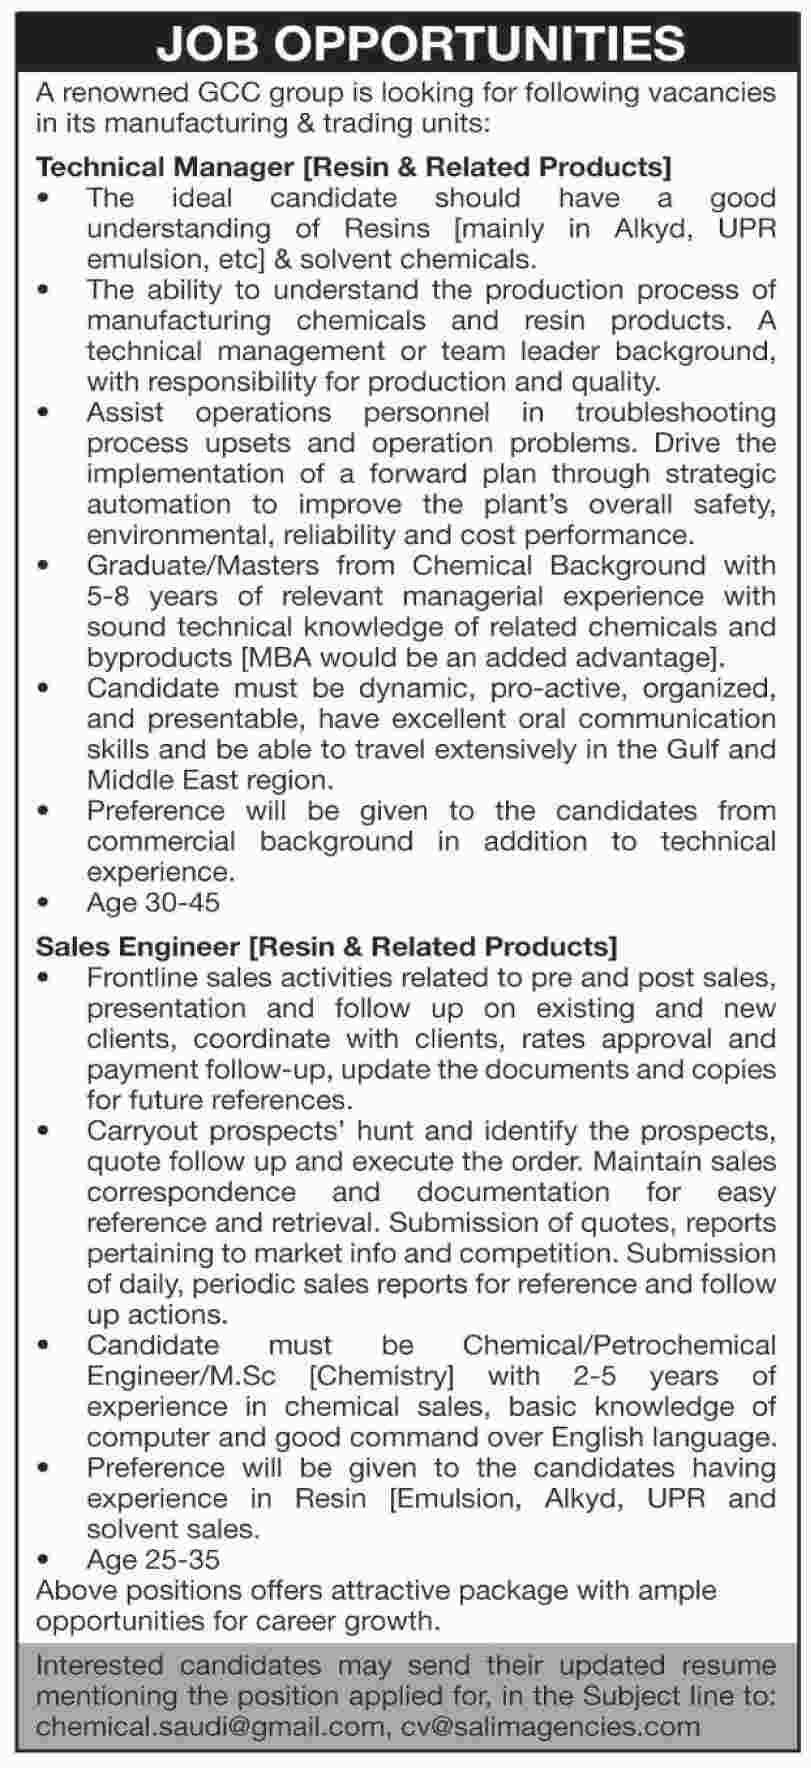 Technical Manager And Sales Engineer Jobs In Pakistan   Jobs